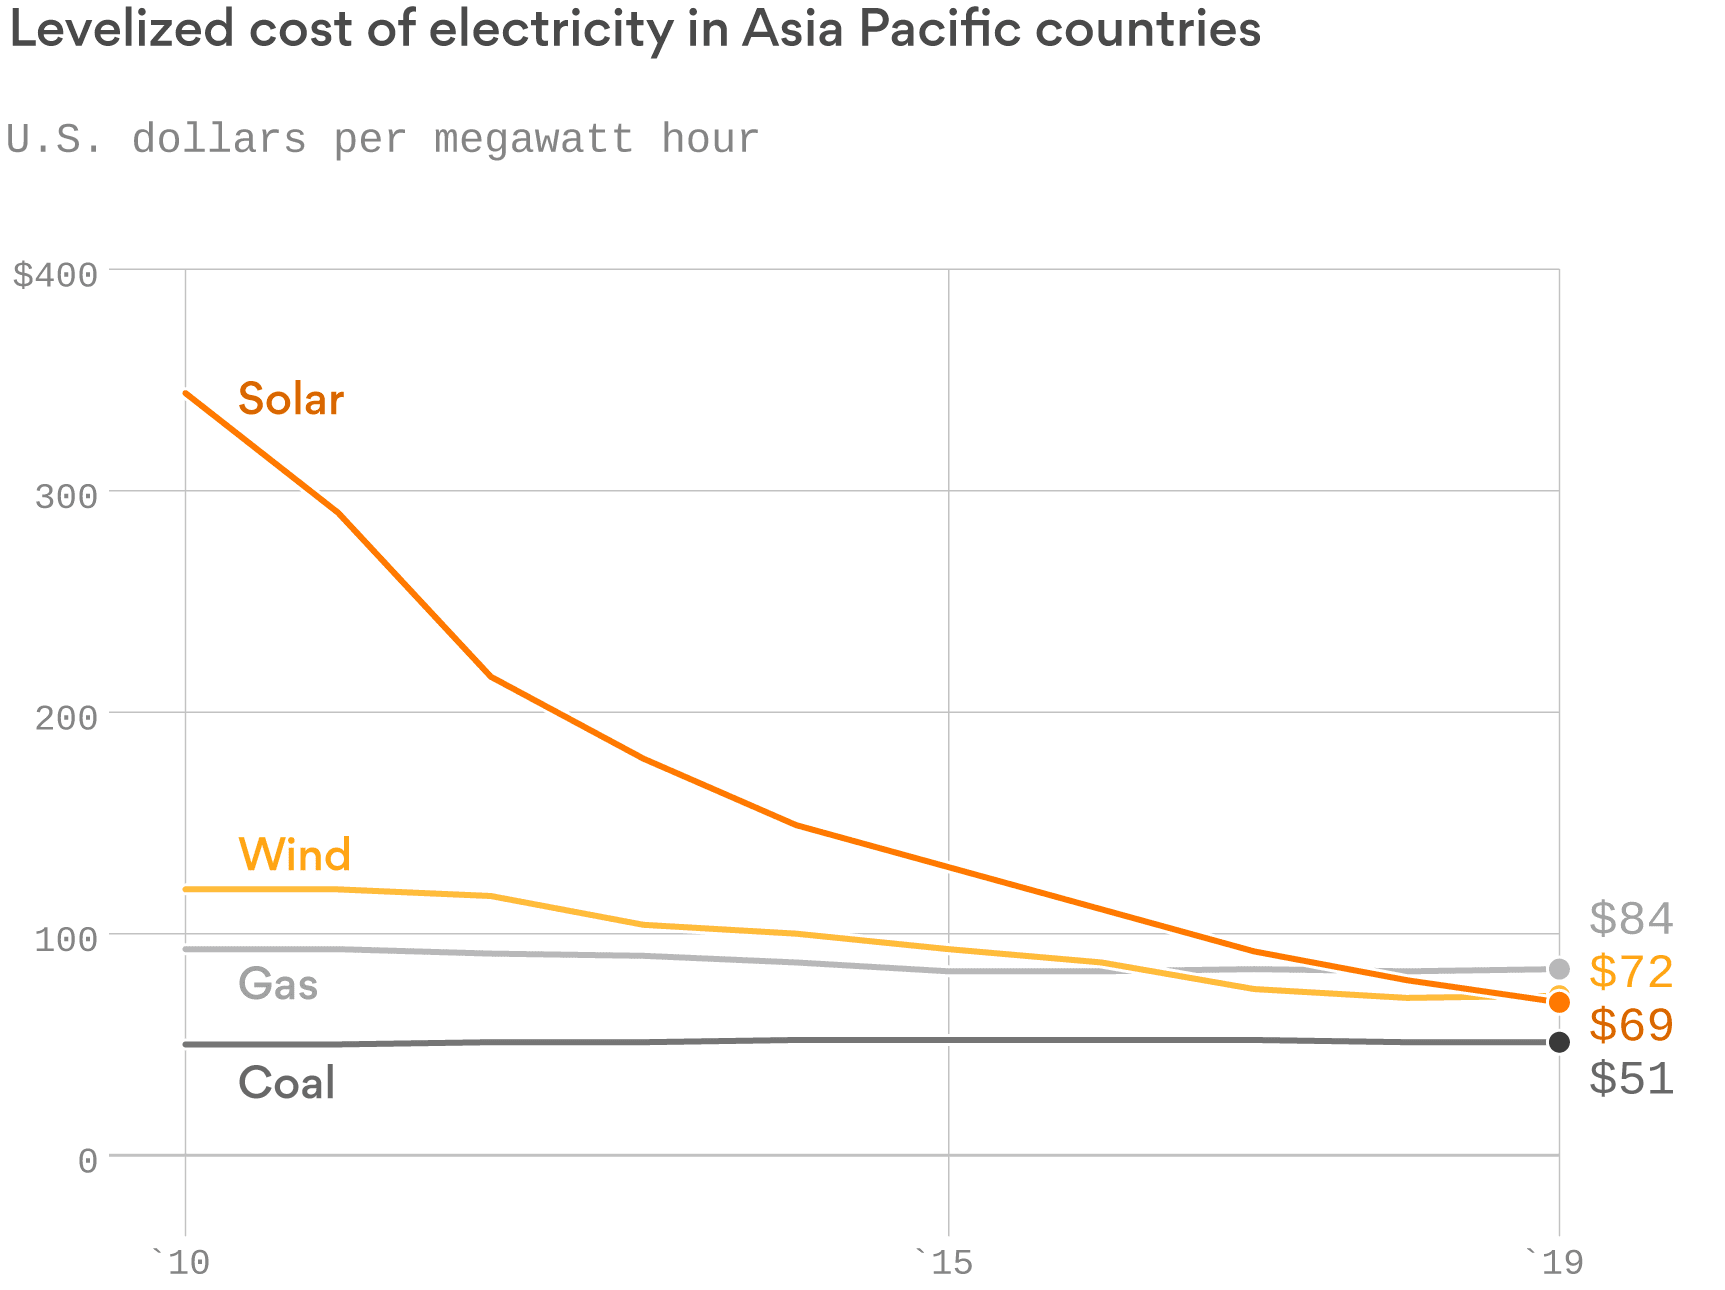 Solar power costs plummet across South Asia and the Pacific